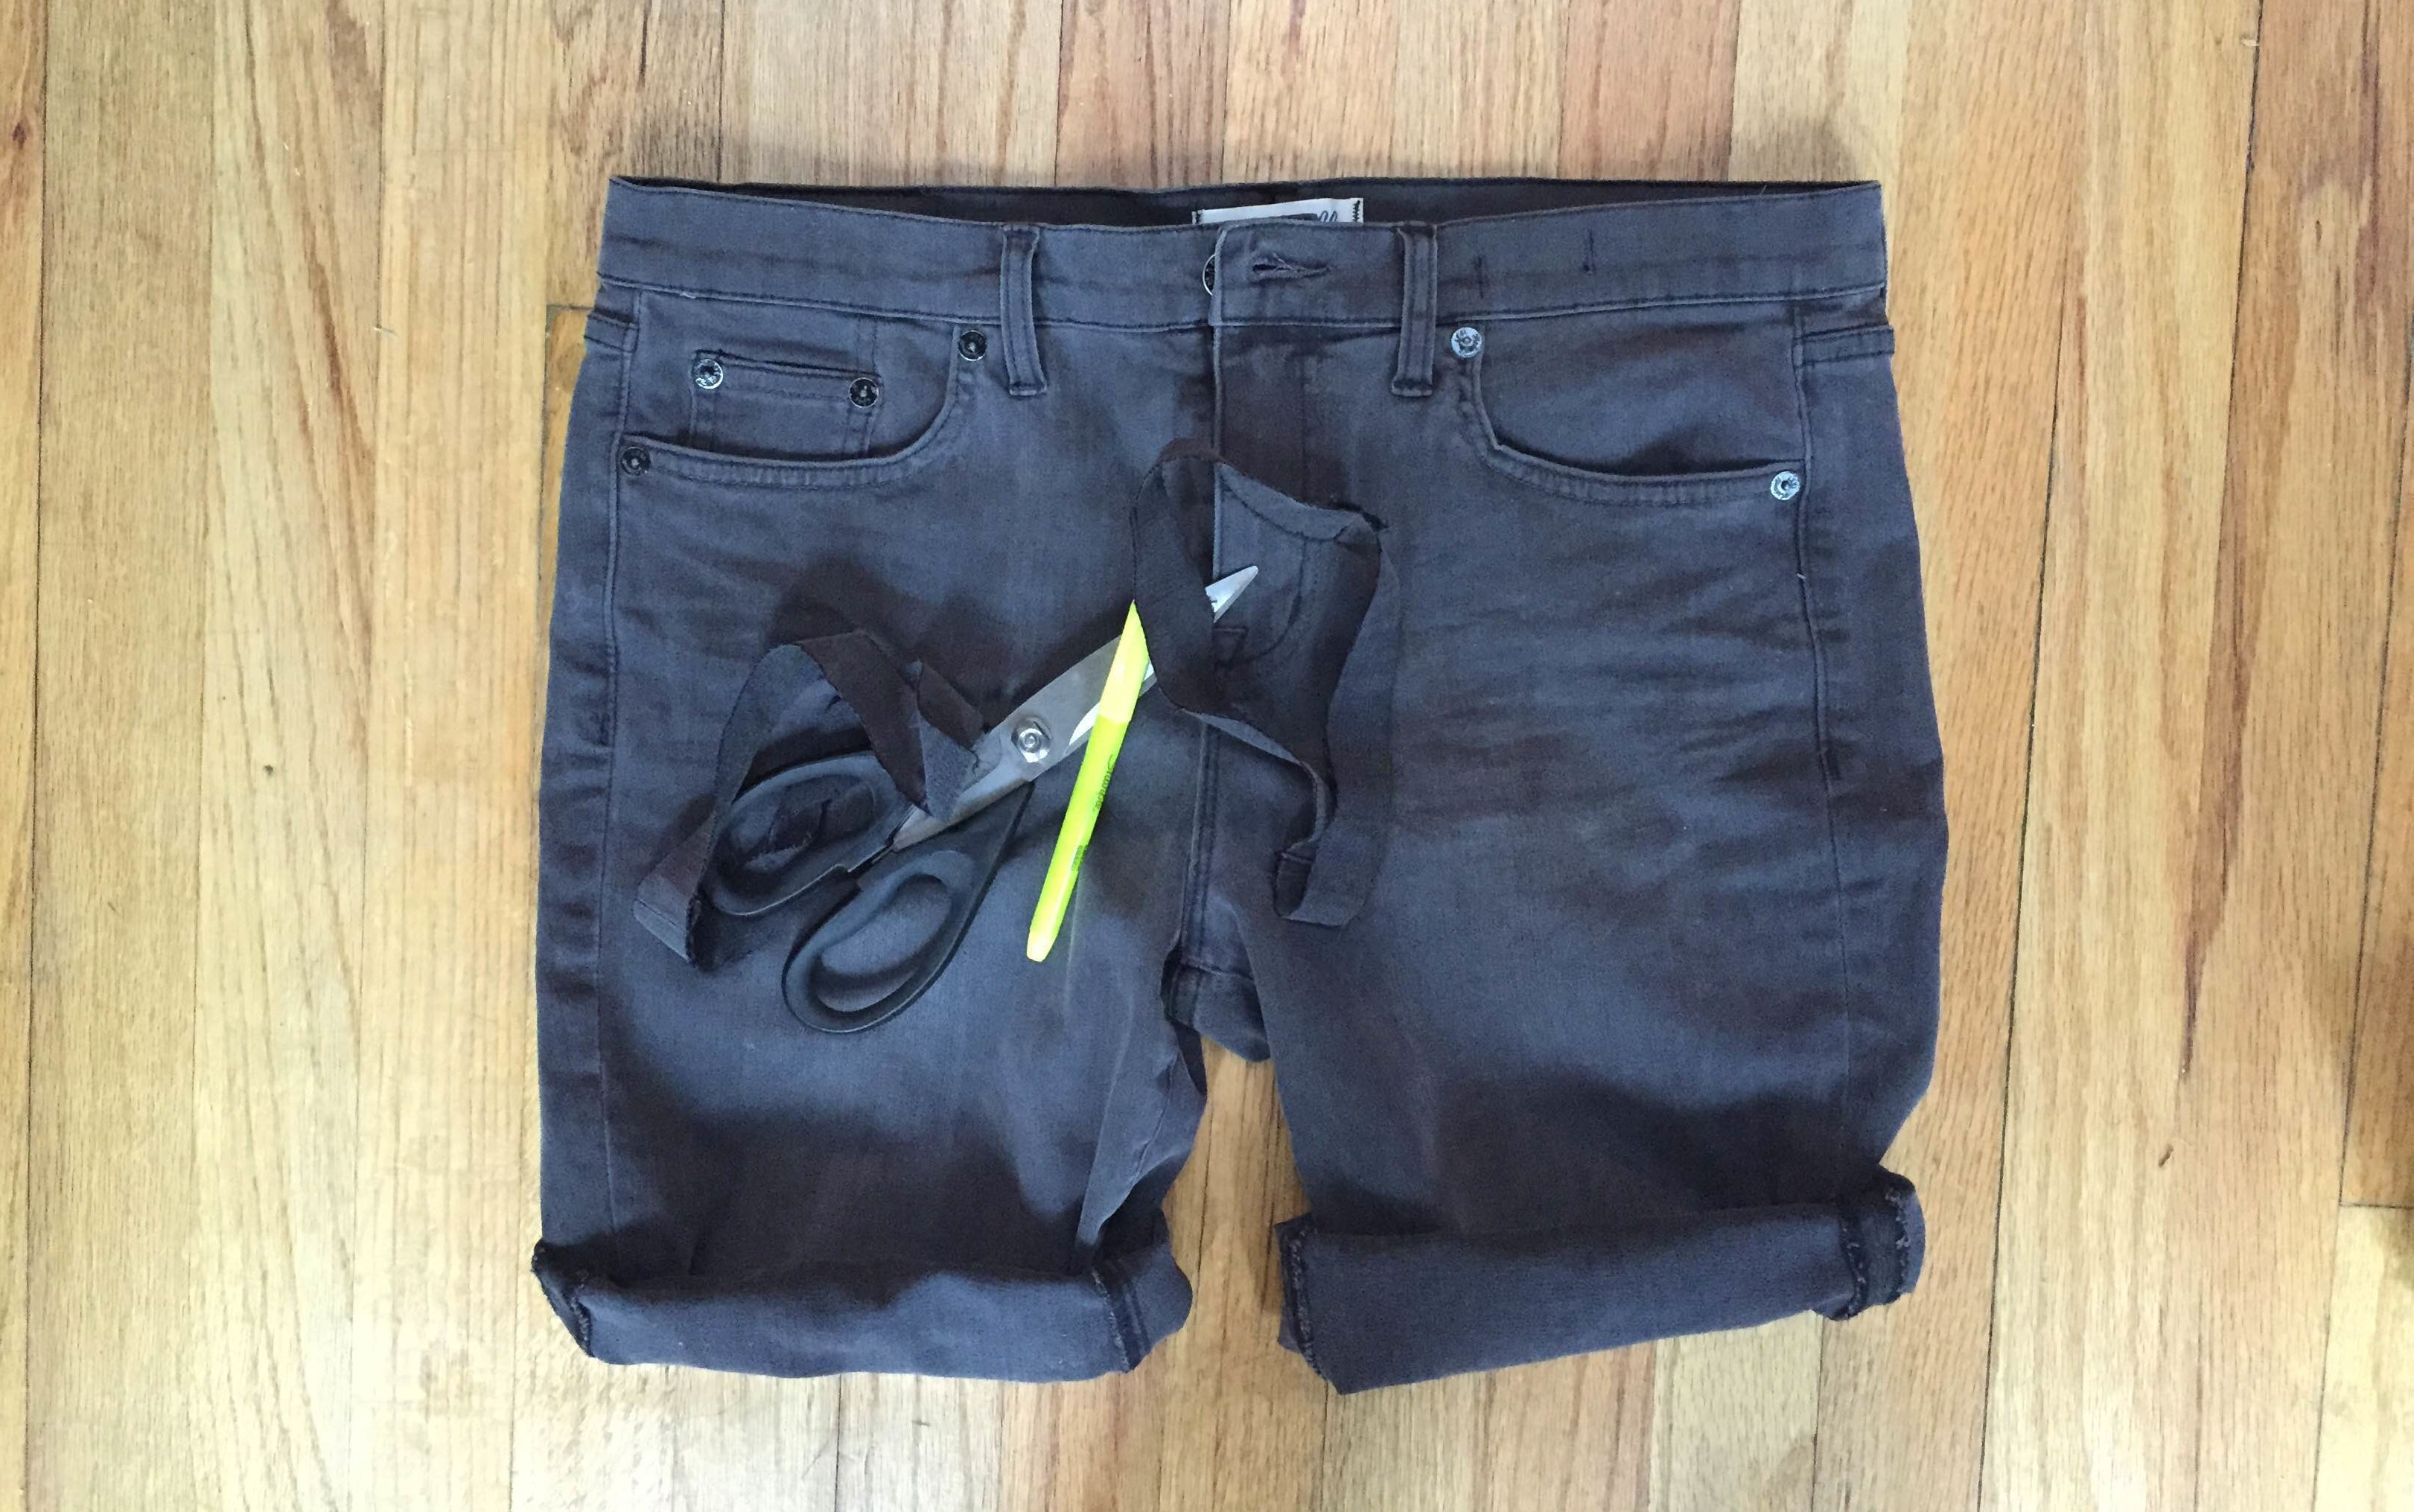 Jun 26, · Hey guys in this video I will show you how to turn your old jeans into cool Shorts. So easy. So cool. Music: Vivaldi - Concerto alla rustica in G-Major.